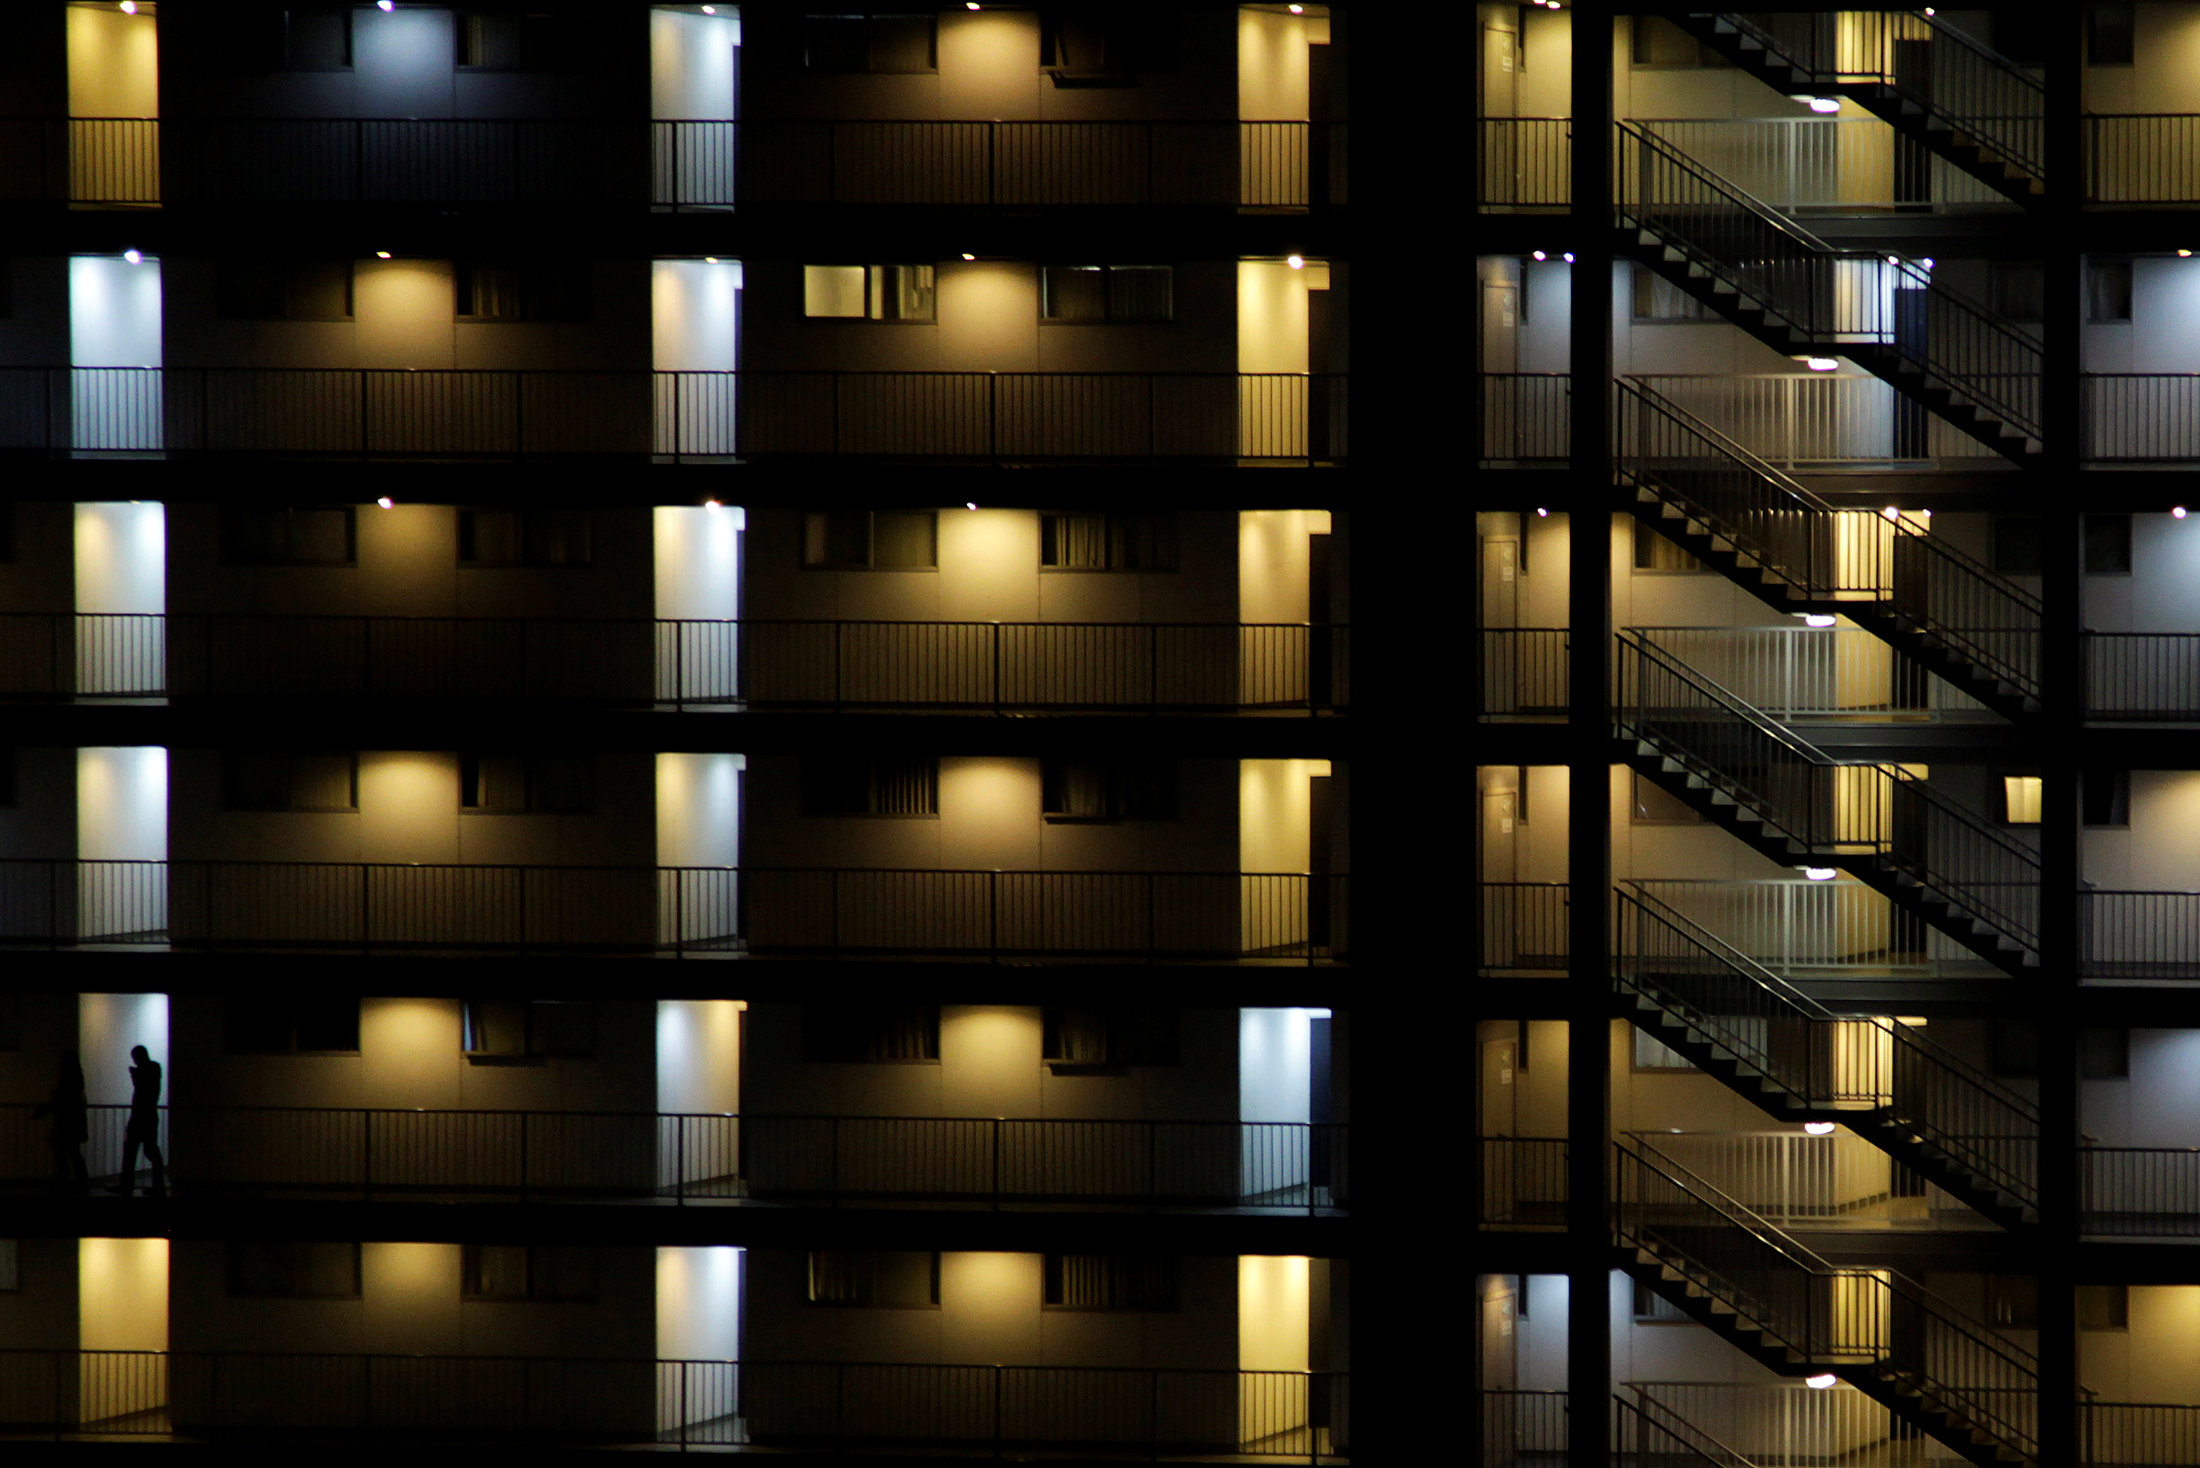 FILE PHOTO: People walk in an apartment building in central Auckland